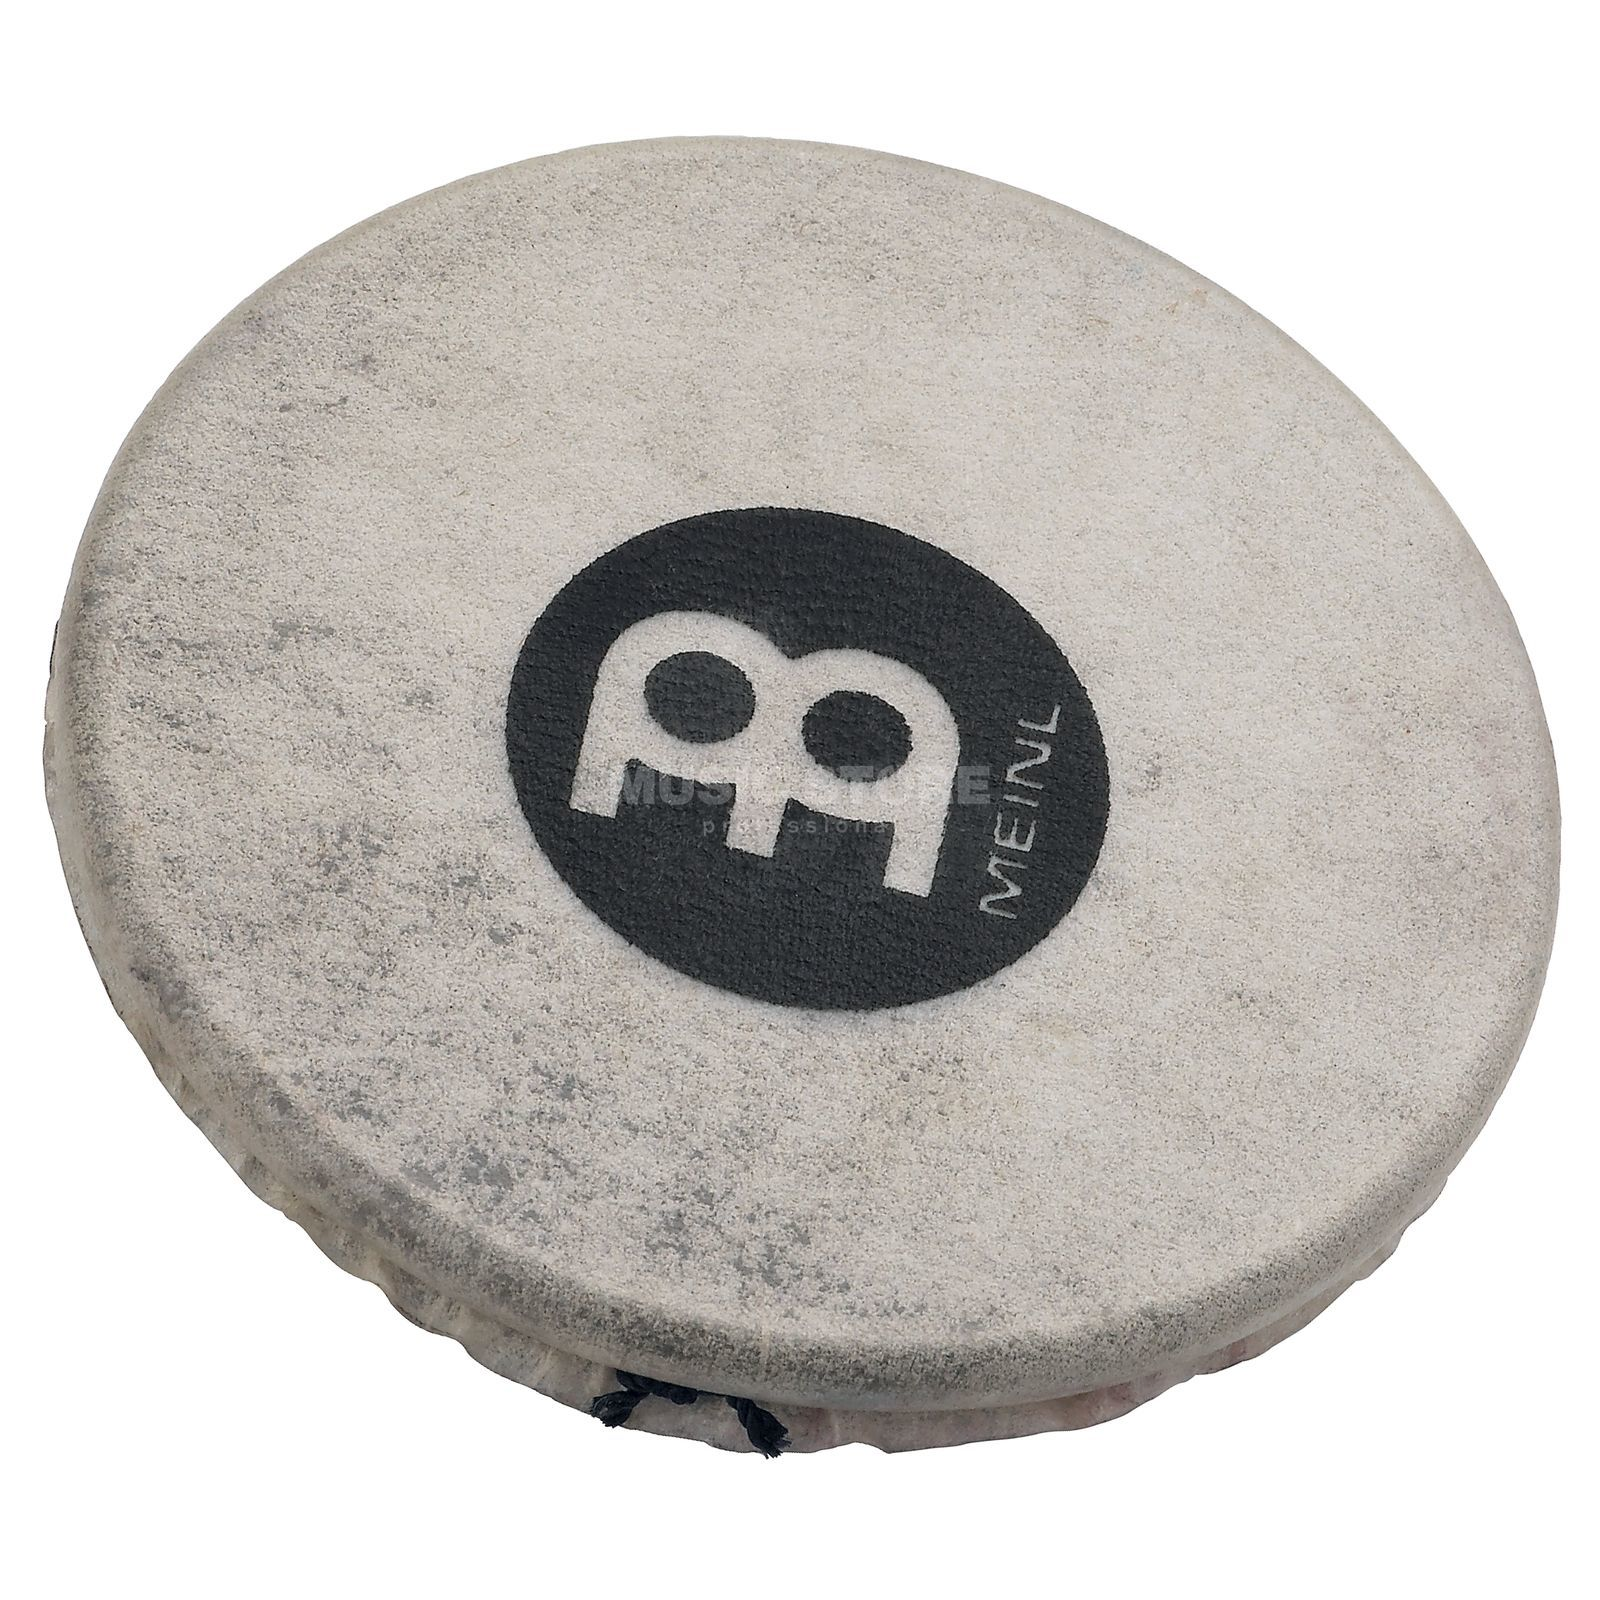 Meinl SH18 Headed Spark Shaker Medium Product Image